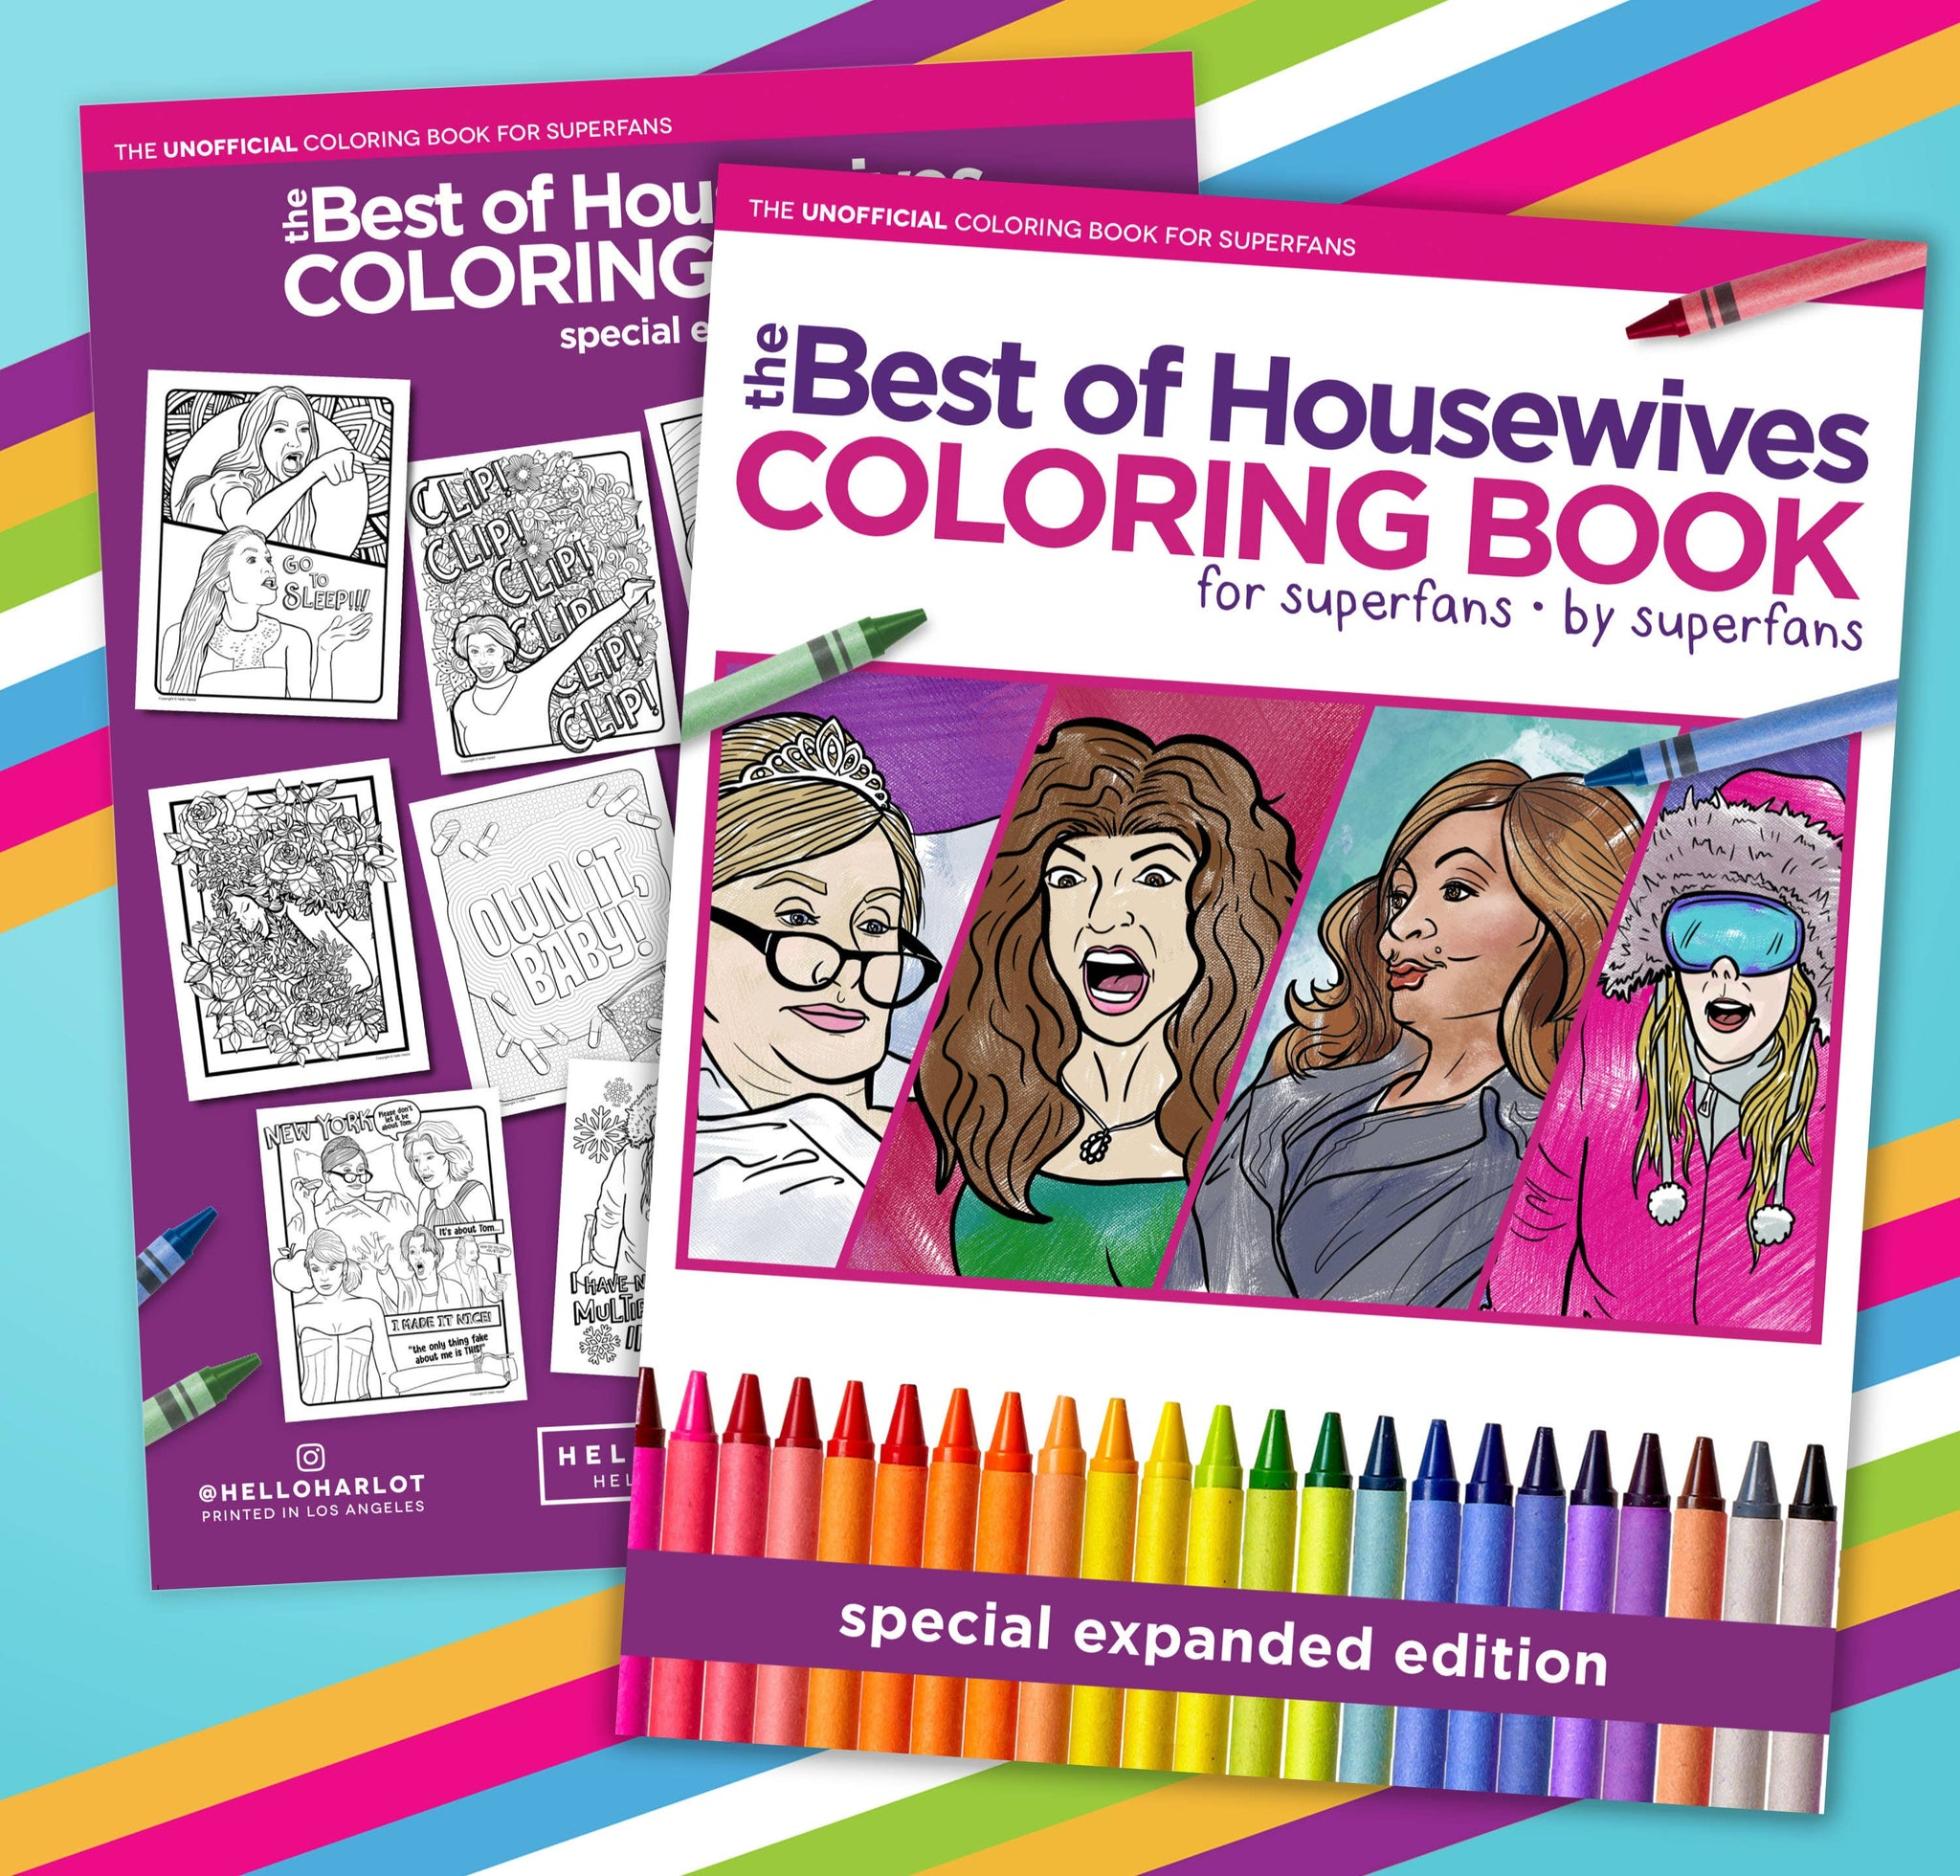 Hello Harlot - Best of Housewives Coloring Book